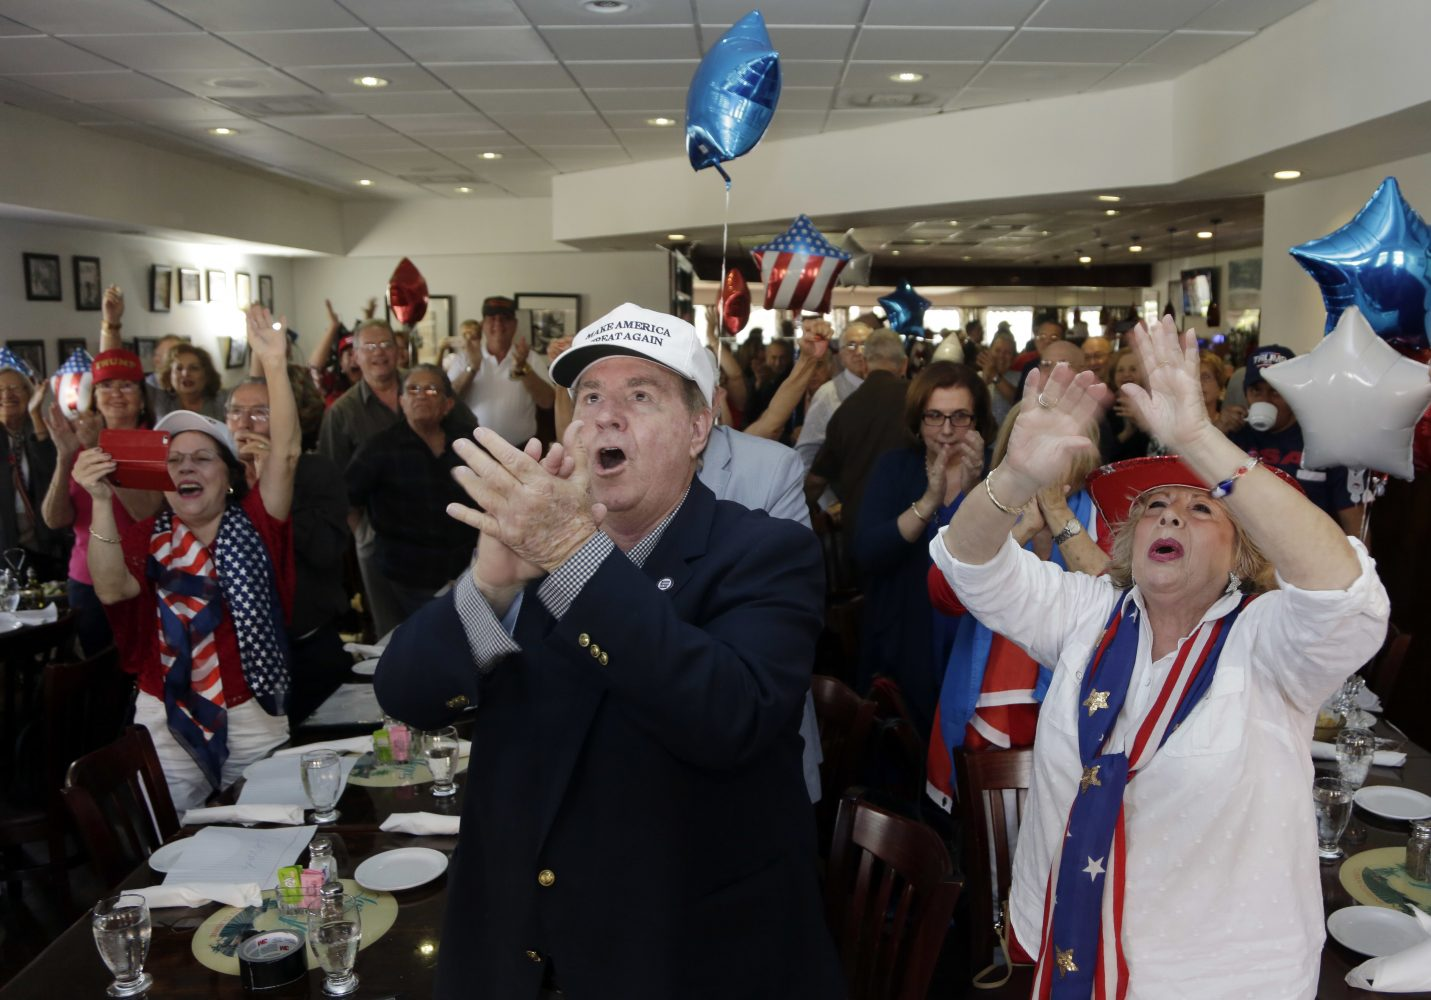 Frank de Varona, left, and Martie Mees, right, applaude as they watch a televised broadcast of the presidential inauguration of Donald Trump, Friday, Jan. 20, 2017, during a watch party organized by Hispanas for Trump in Miami. (AP Photo/Lynne Sladky)